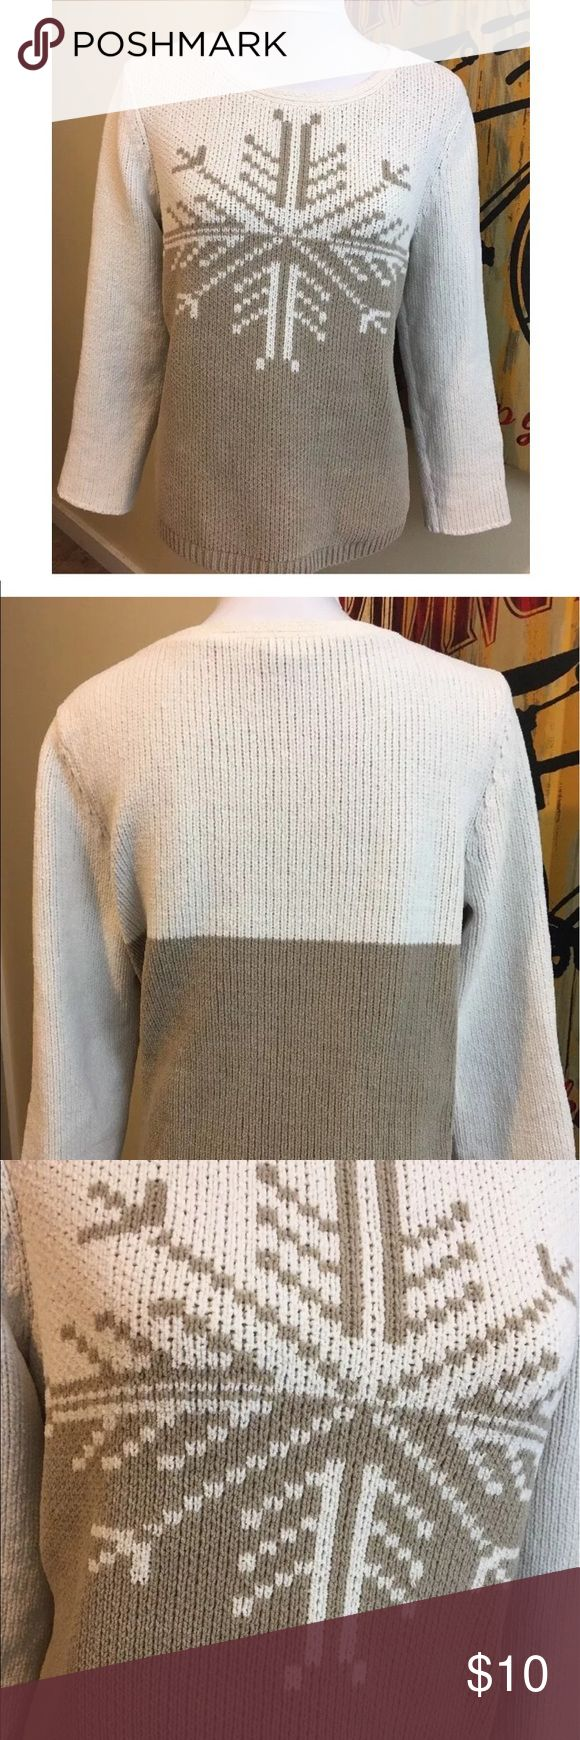 """J. Jill Crewneck Snowflake Sweater Super Soft J. Jill Winter Women's Crewneck Sweater   Holiday Snowflake Design  Beige/Cream  Long Sleeves  100% Polyester -- Extra Plush - Feels like cotton  Size Medium  20"""" Underarm to Underarm Length -  24""""  Sleeves - 22""""  Great, pre-owned condition!  Smoke Free Home J. Jill Sweaters Crew & Scoop Necks"""